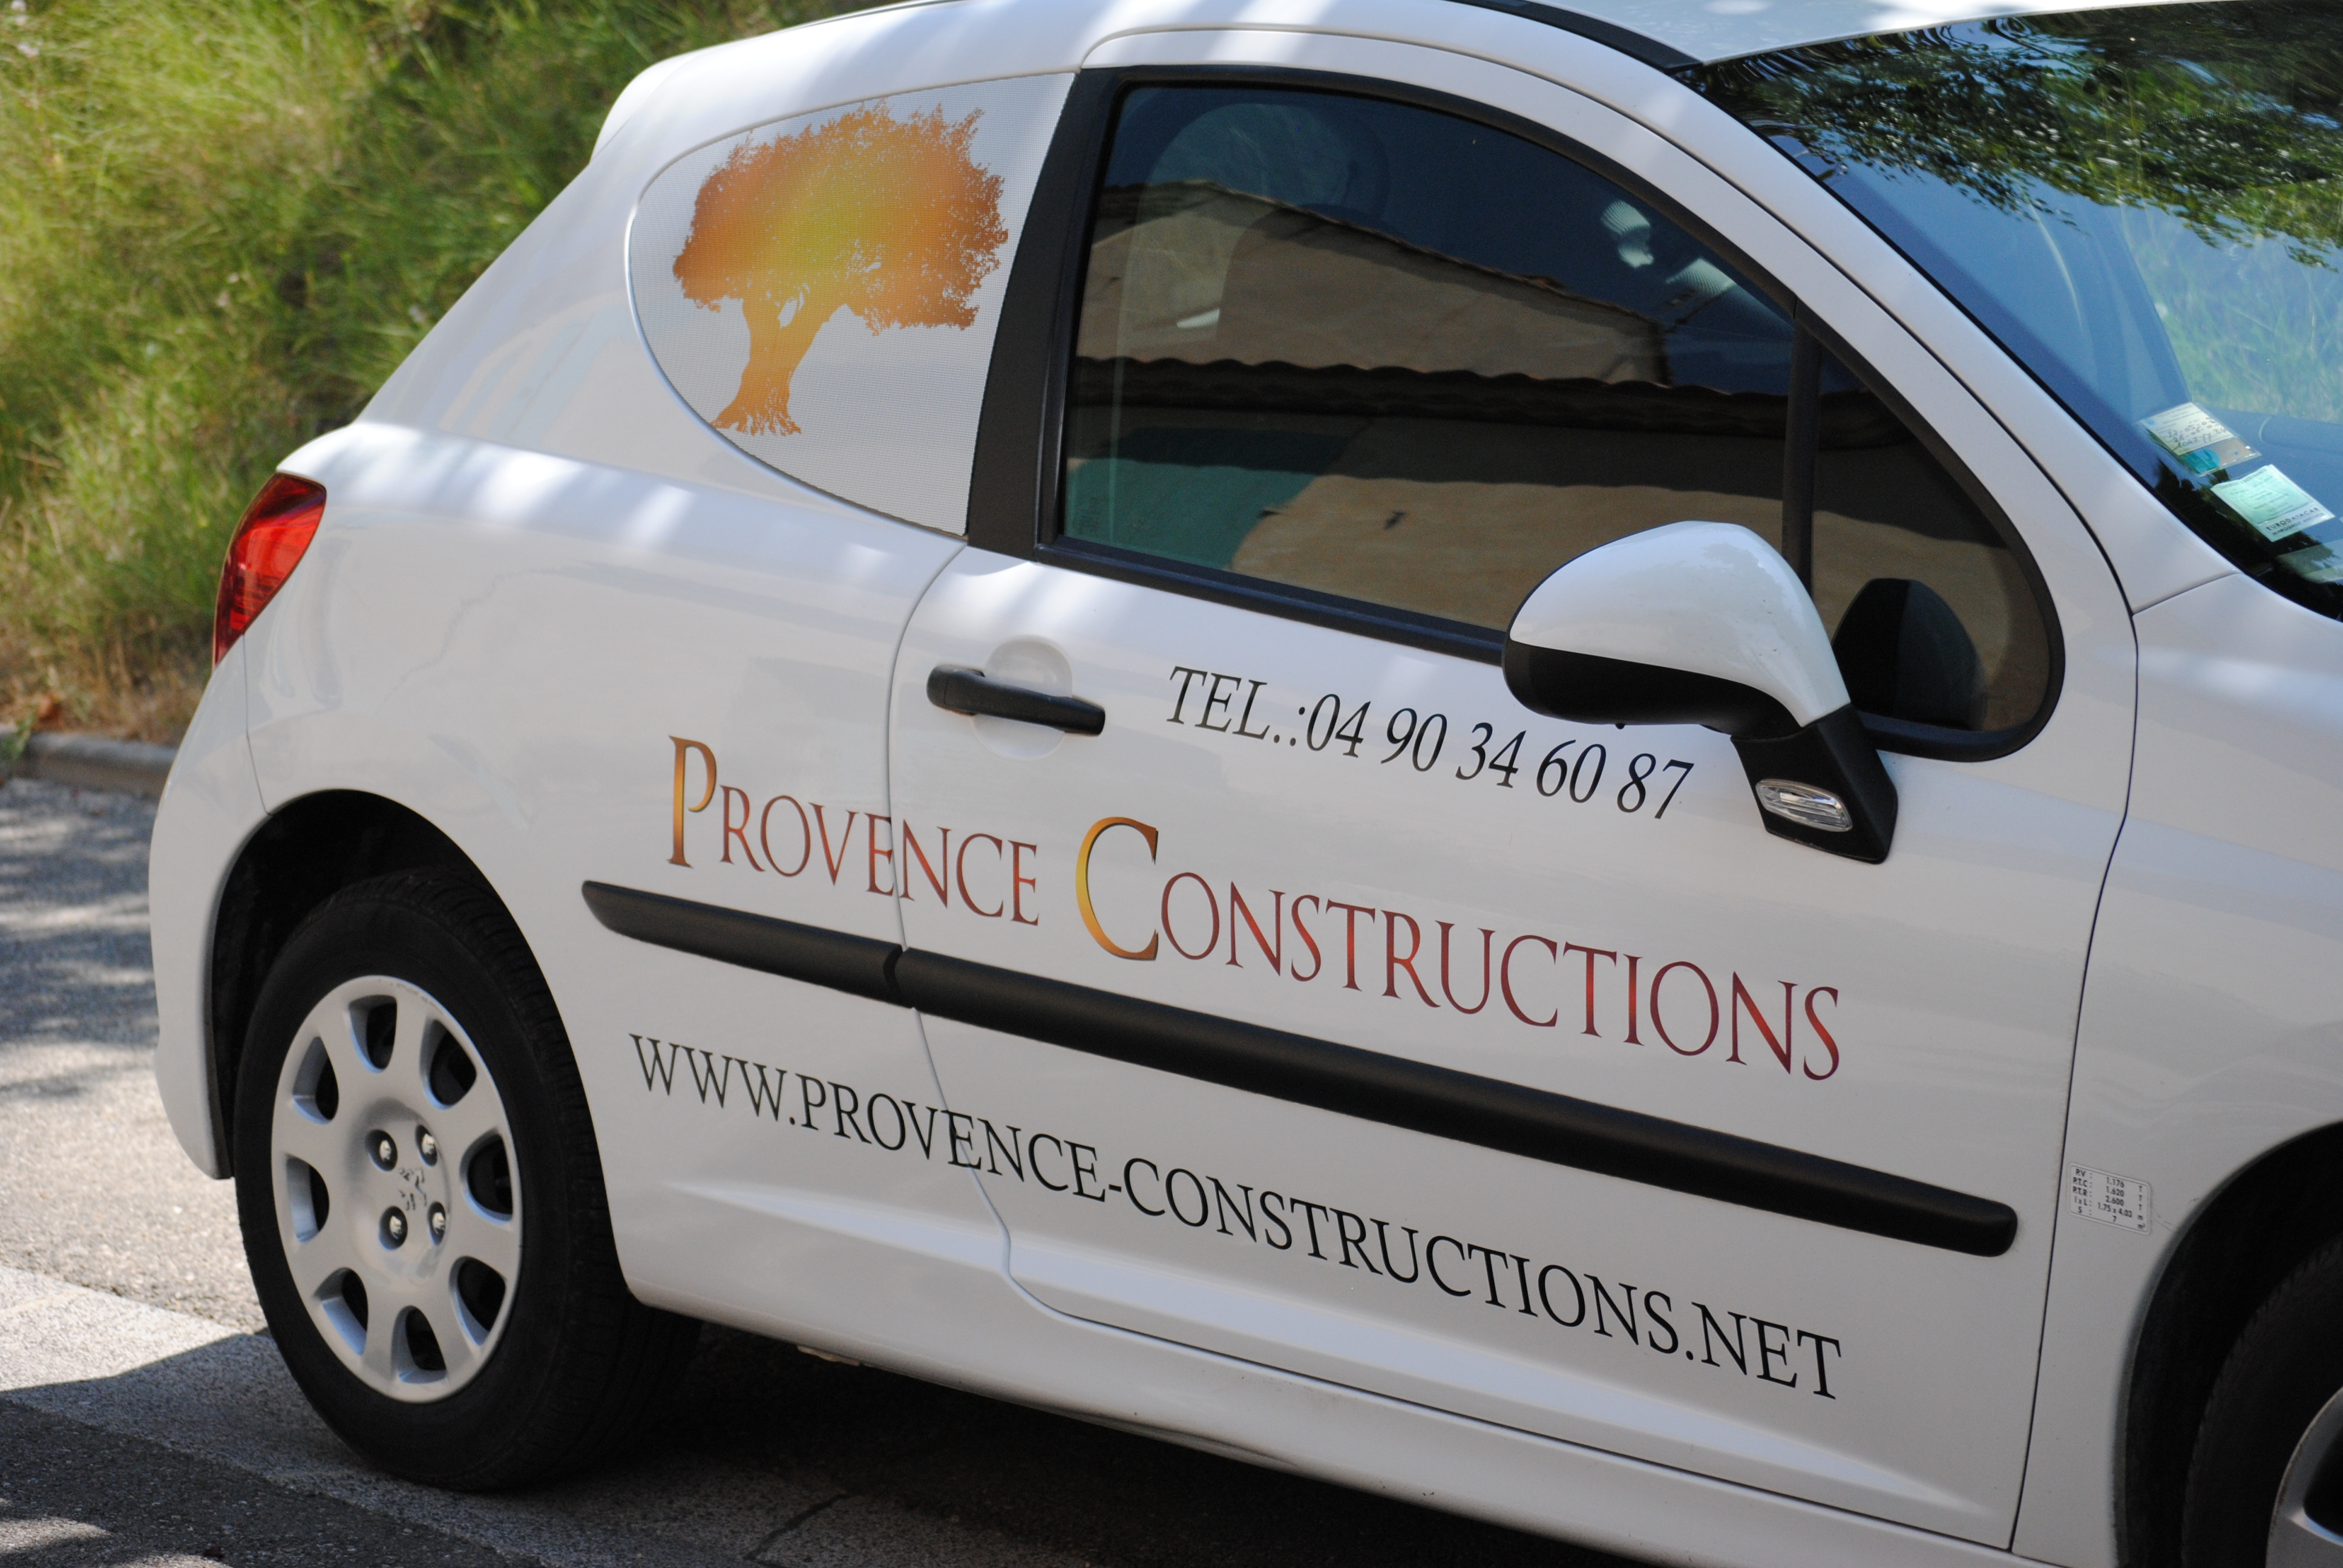 Provence Construction